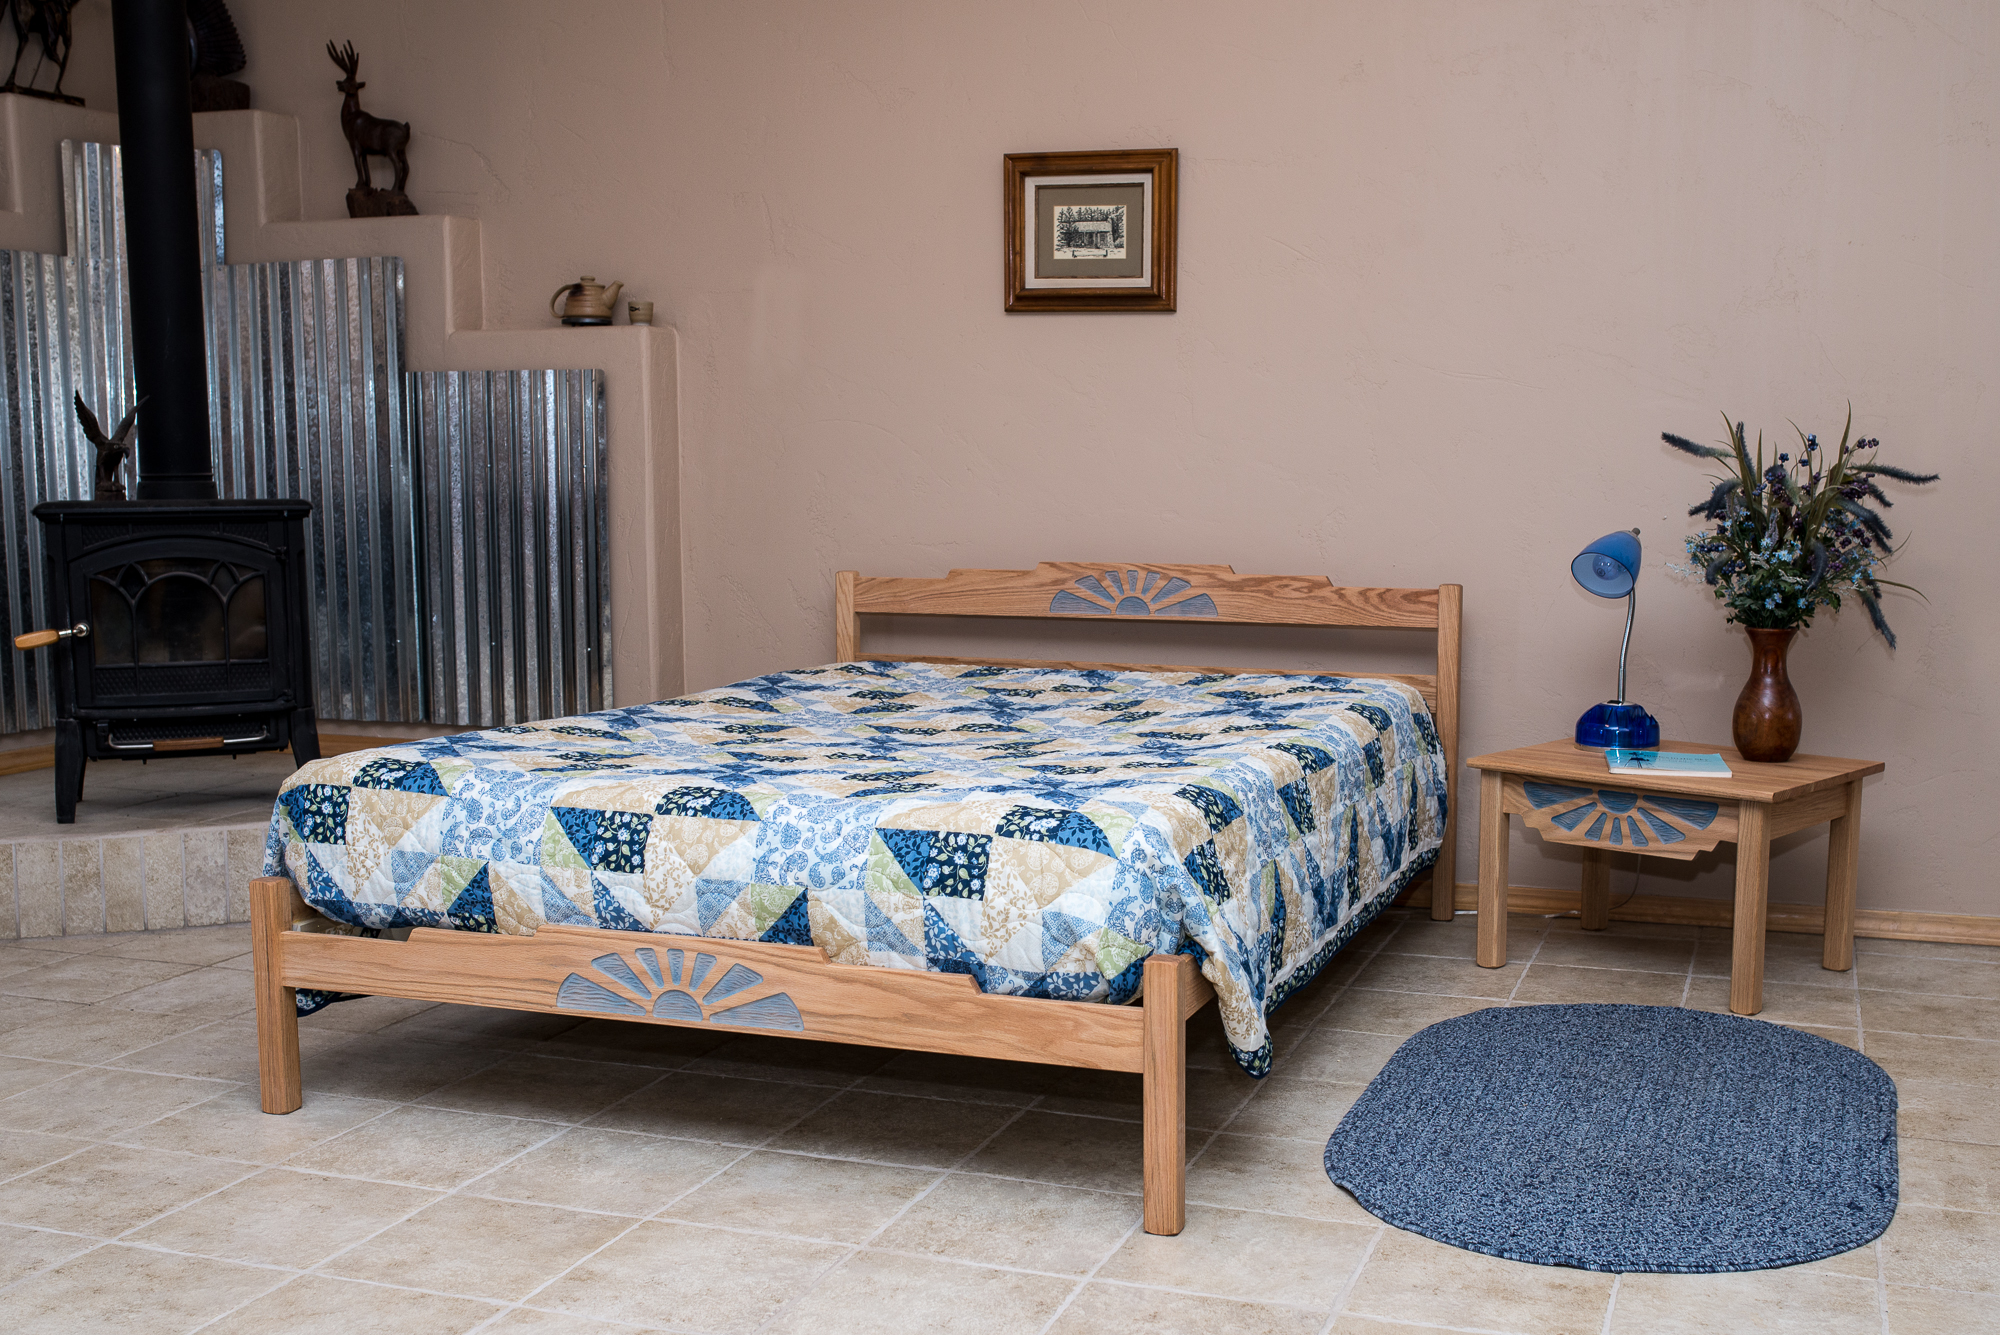 Placitas end table with Placitas Bed. Shown with blue sunburst - may order natural sunburst.